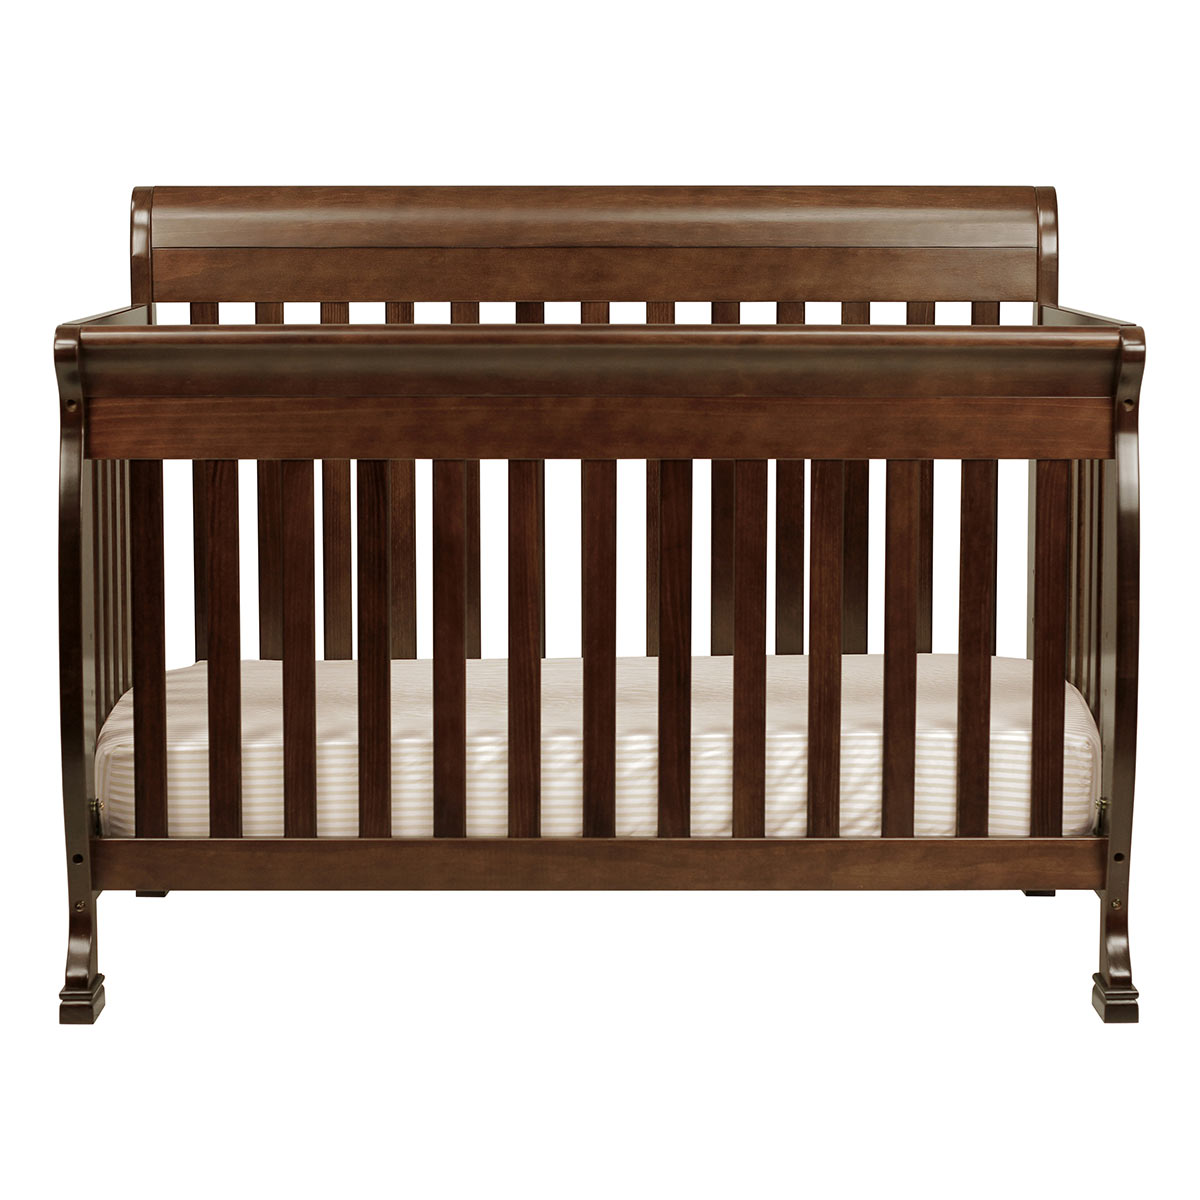 Espresso crib for sale - Davinci Kalani 4 In 1 Convertible Crib In Espresso M5501q Free Shipping